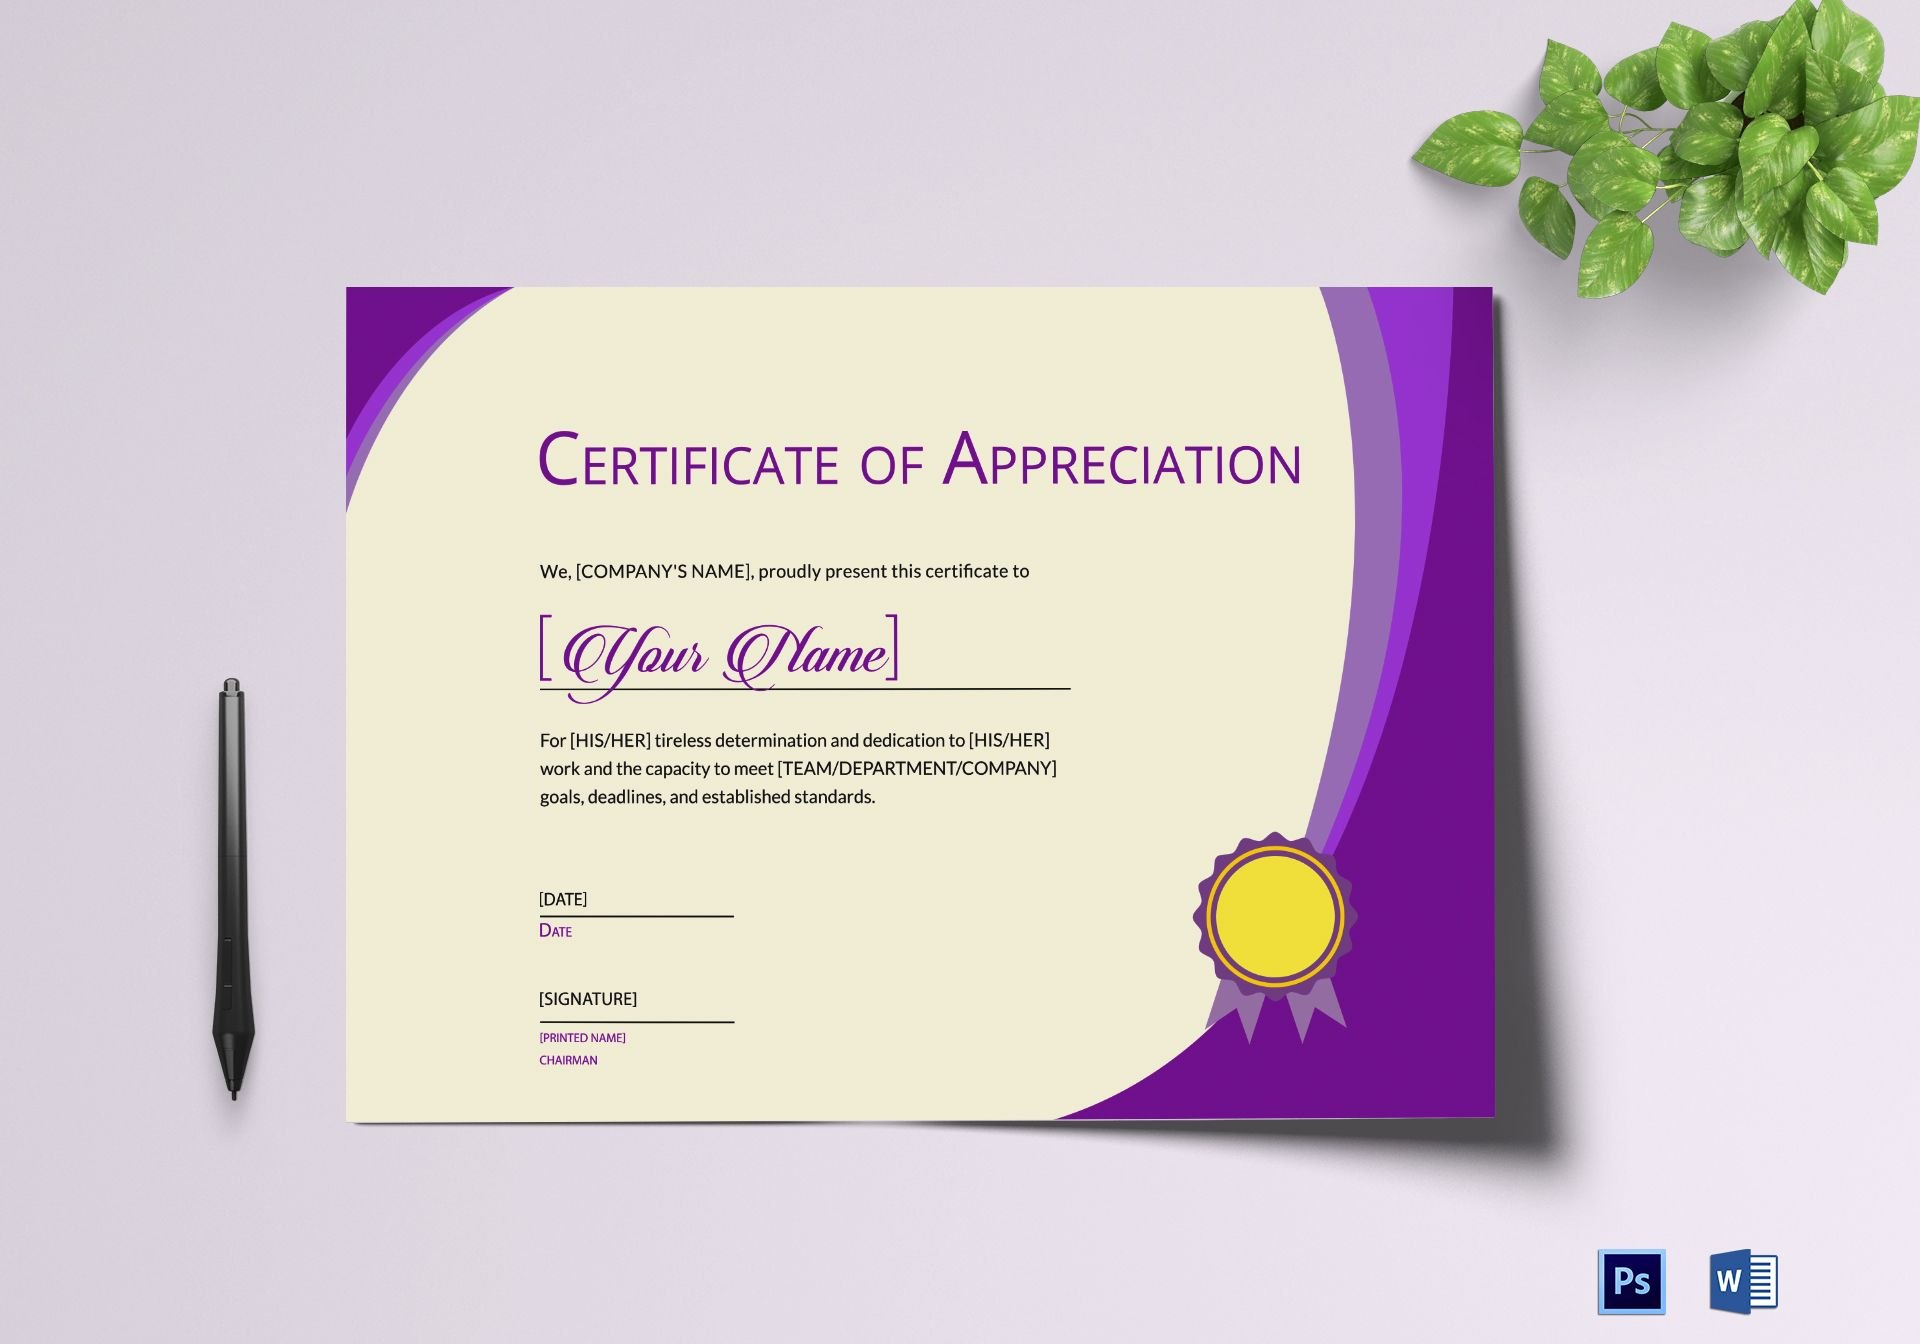 Expression Of Thank You Certificate Design Template In Psd Word Intended For Thanks Certificate Template